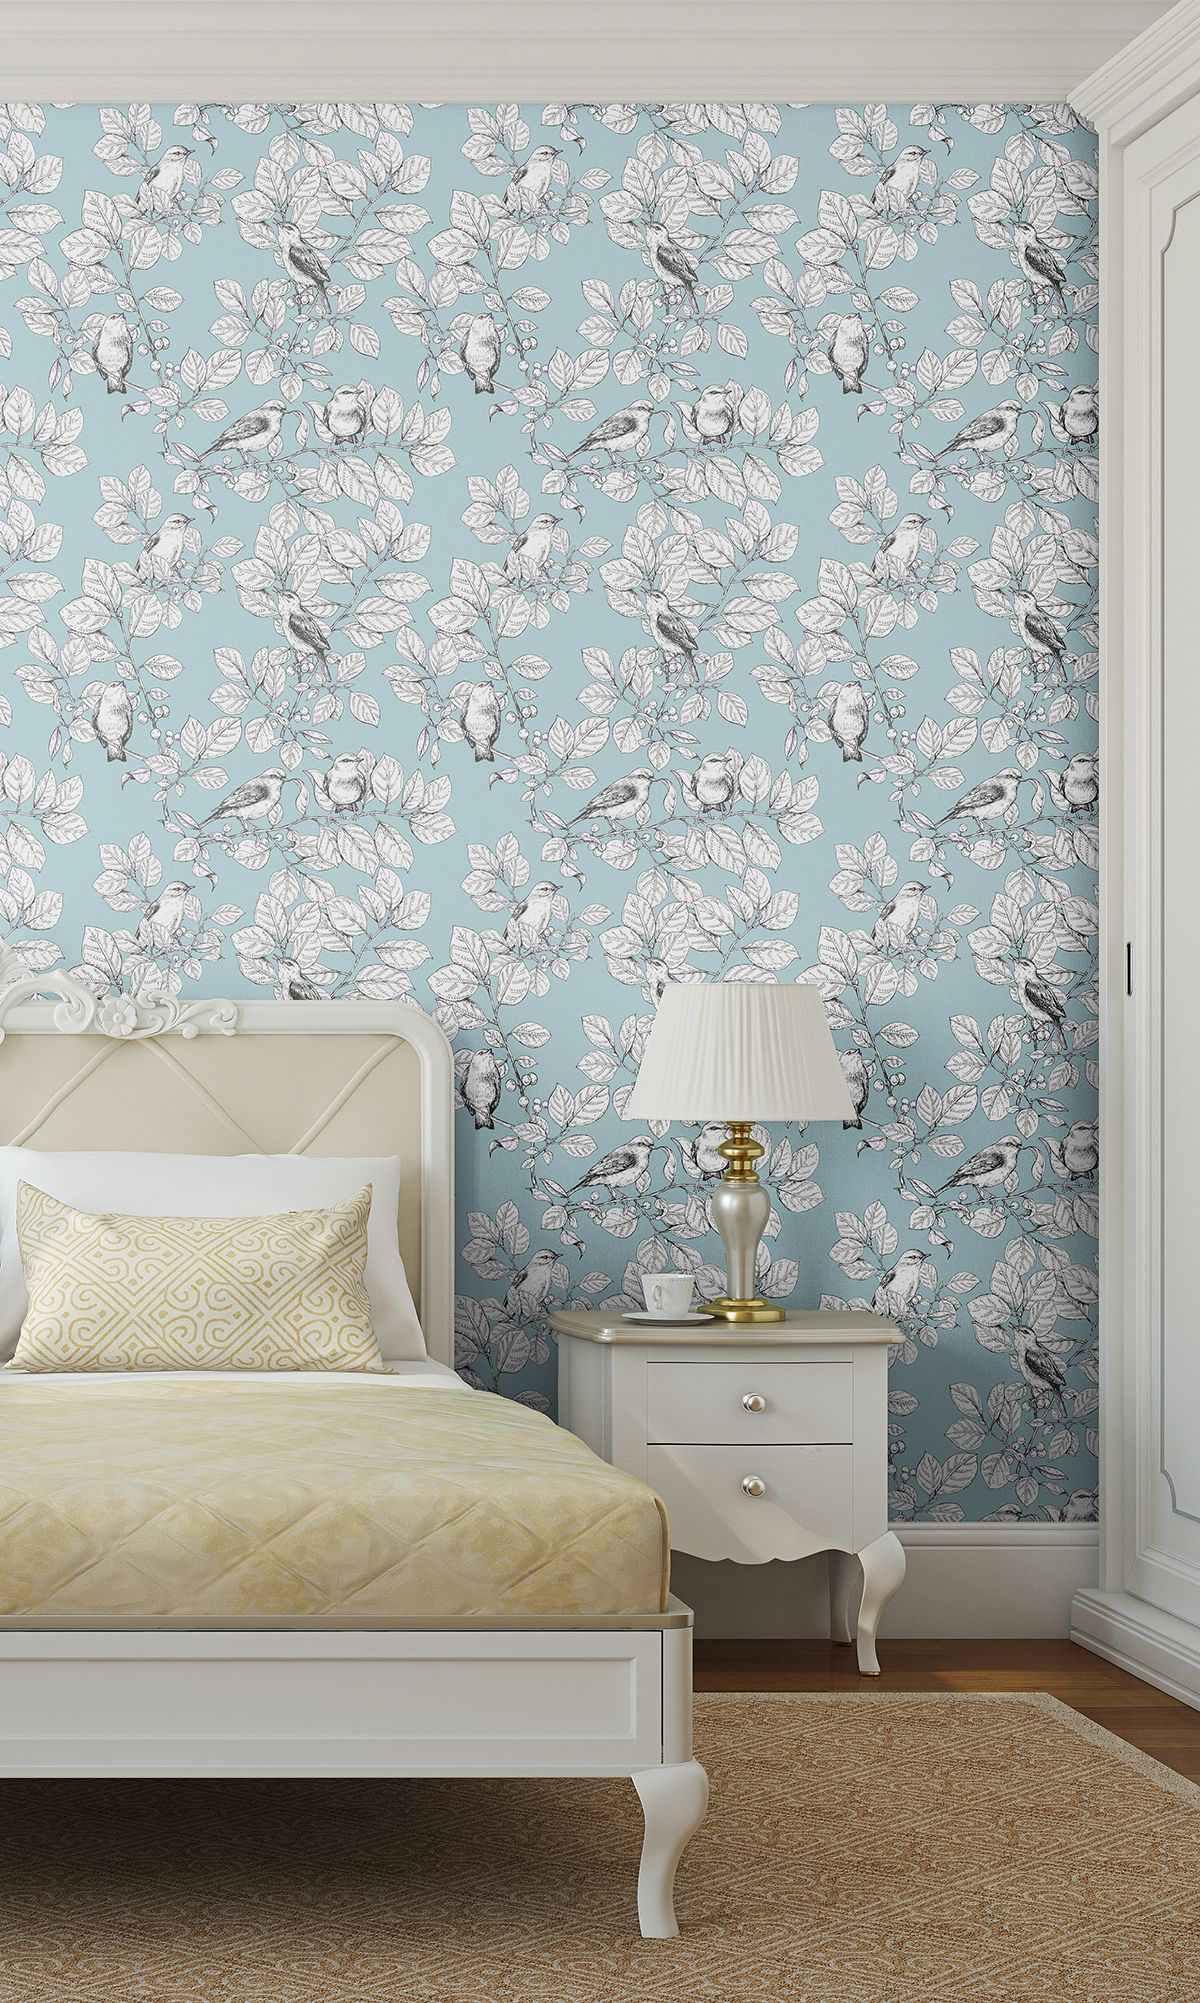 Blue Floral Animal Fabric Removable Wallpaper 6380 (With